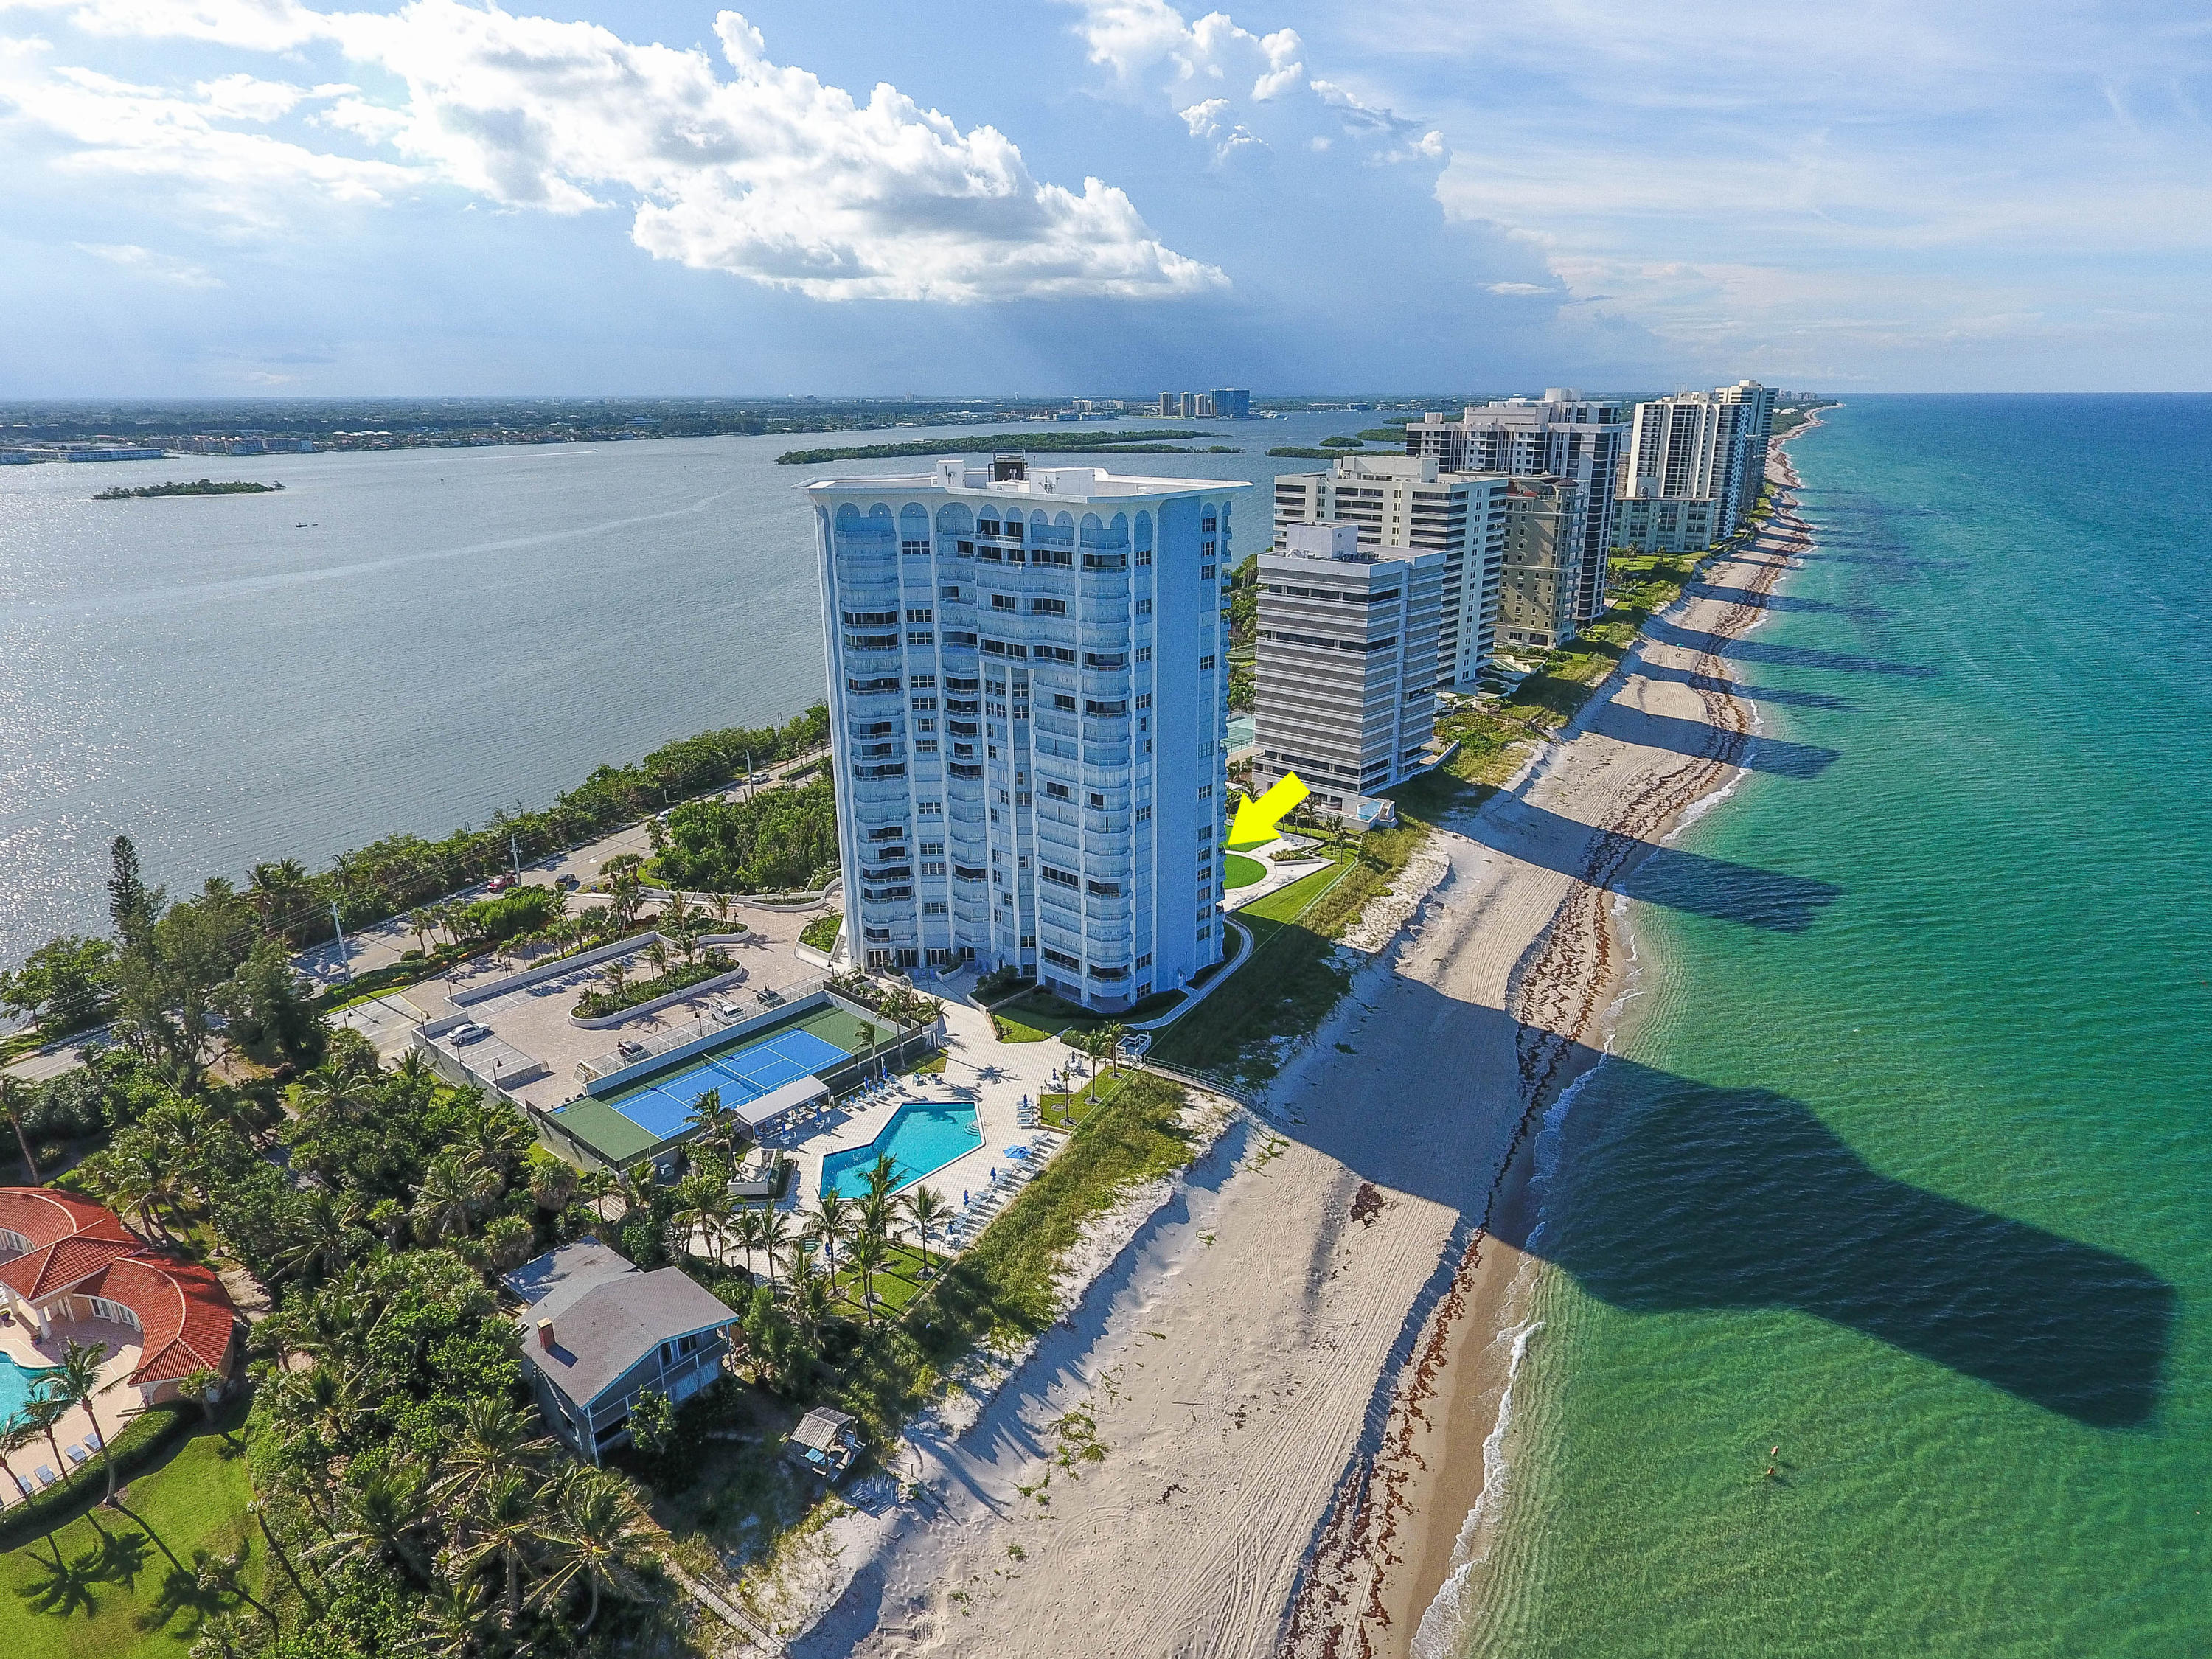 New Home for sale at 5200 Ocean Drive in Singer Island